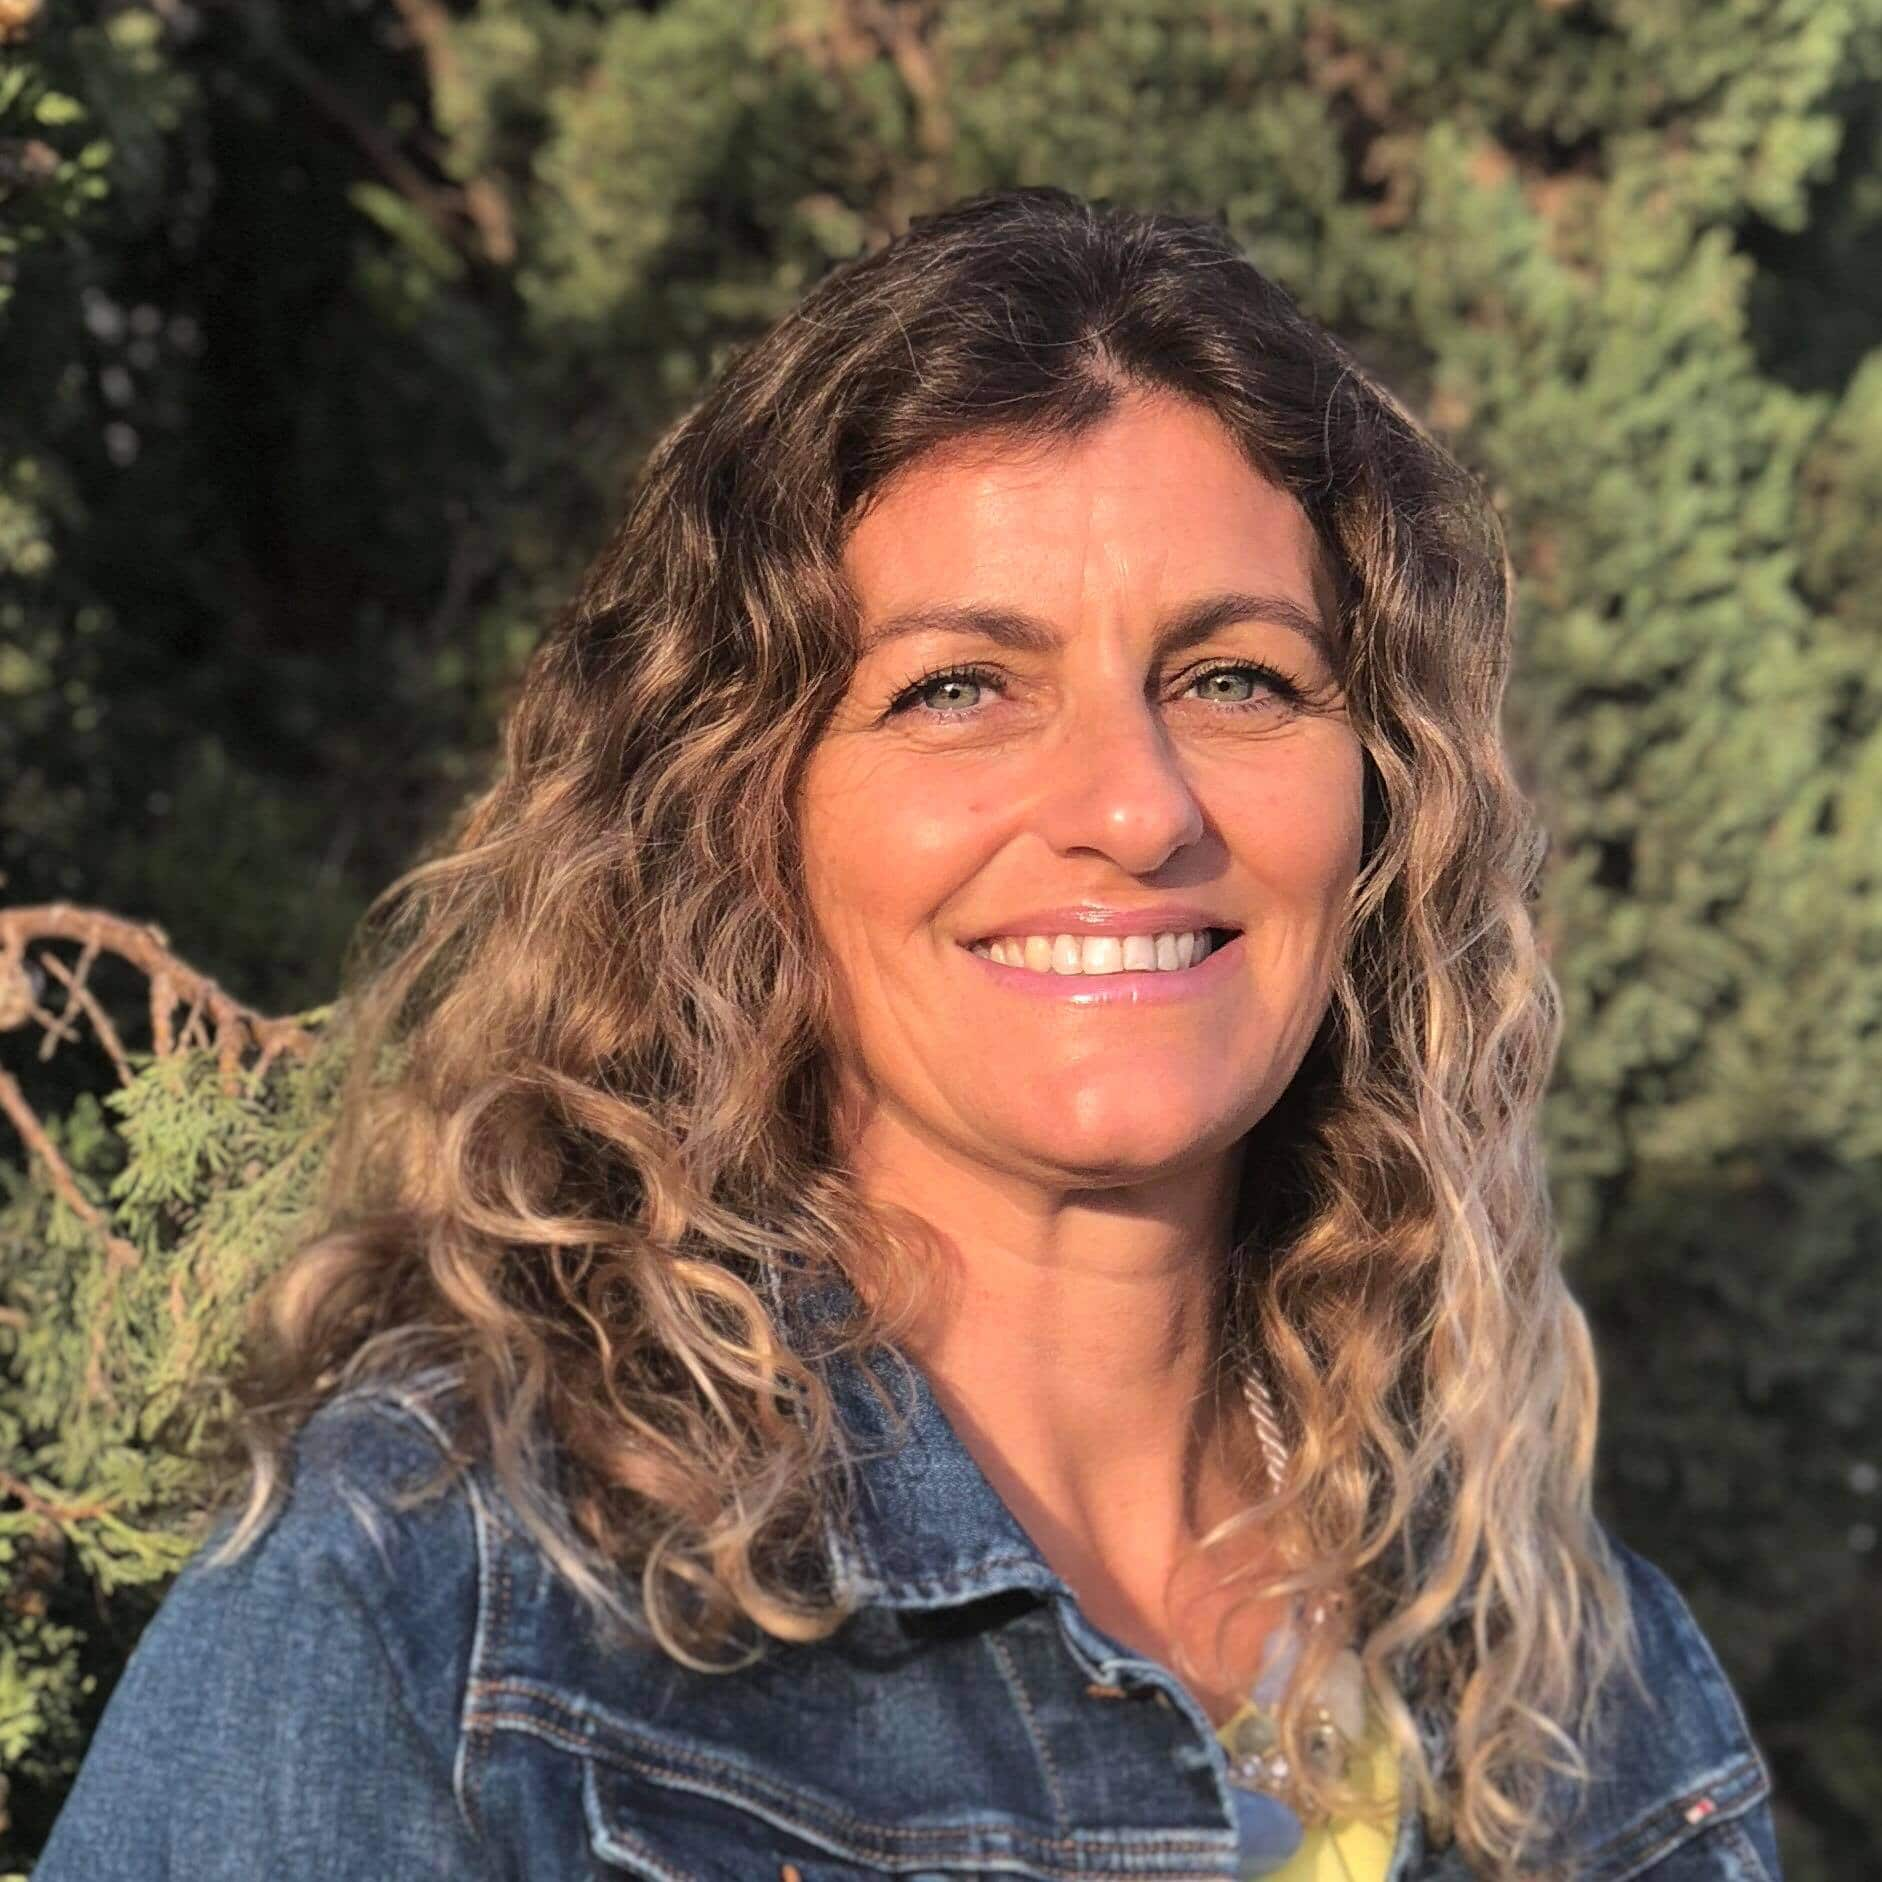 DEIRDRE FARRUGIA – Fitness and Wellbeing